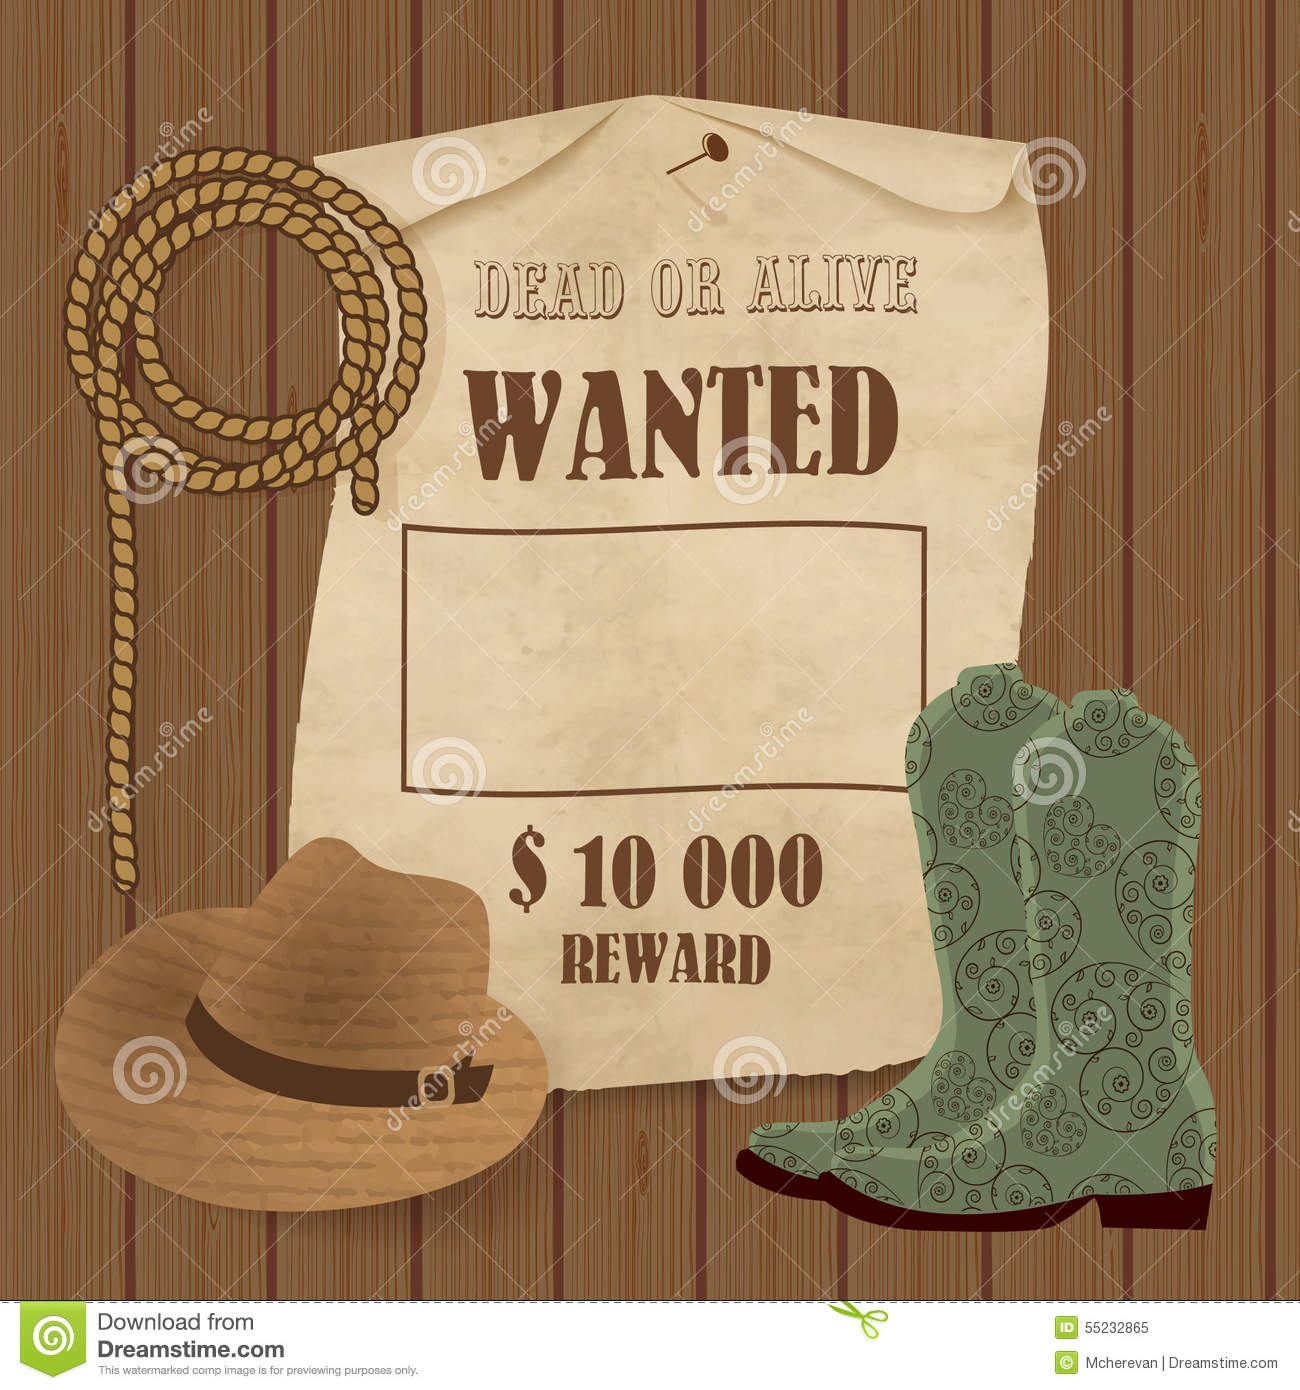 Cowboy poster wild west background for your design cowboy cowboy poster wild west background for your design cowboy elements set royalty free illustration toneelgroepblik Image collections